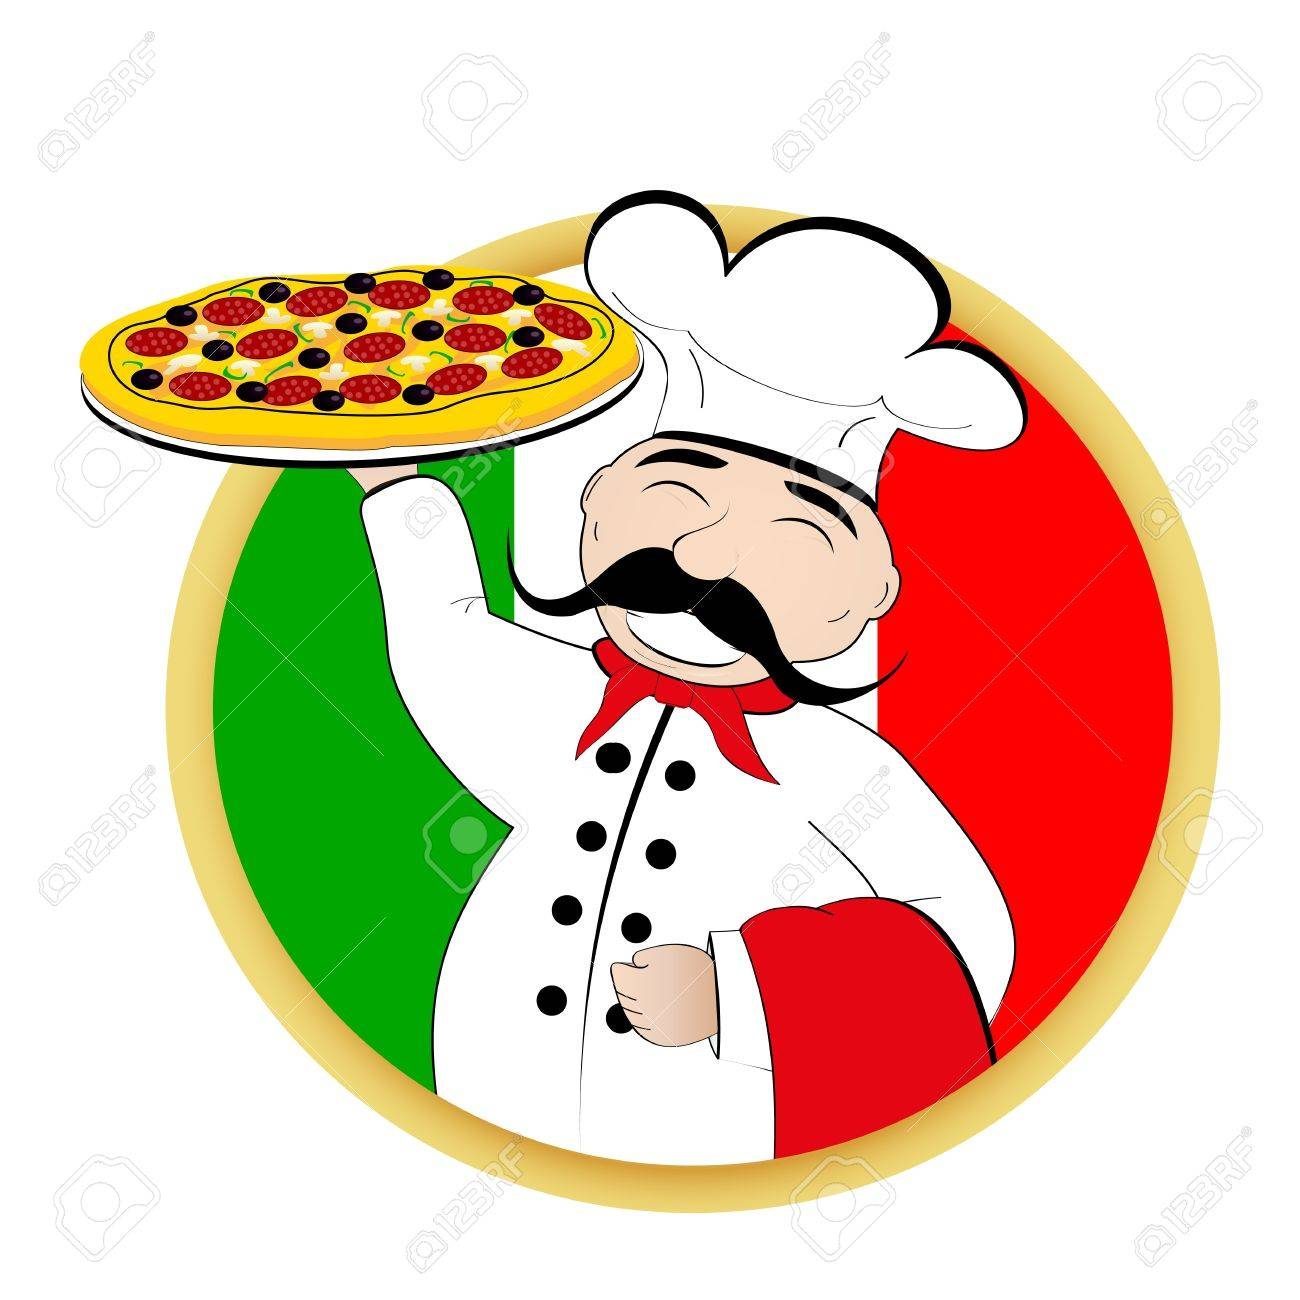 Chef pizza on background of the flag of Italy - 20243705